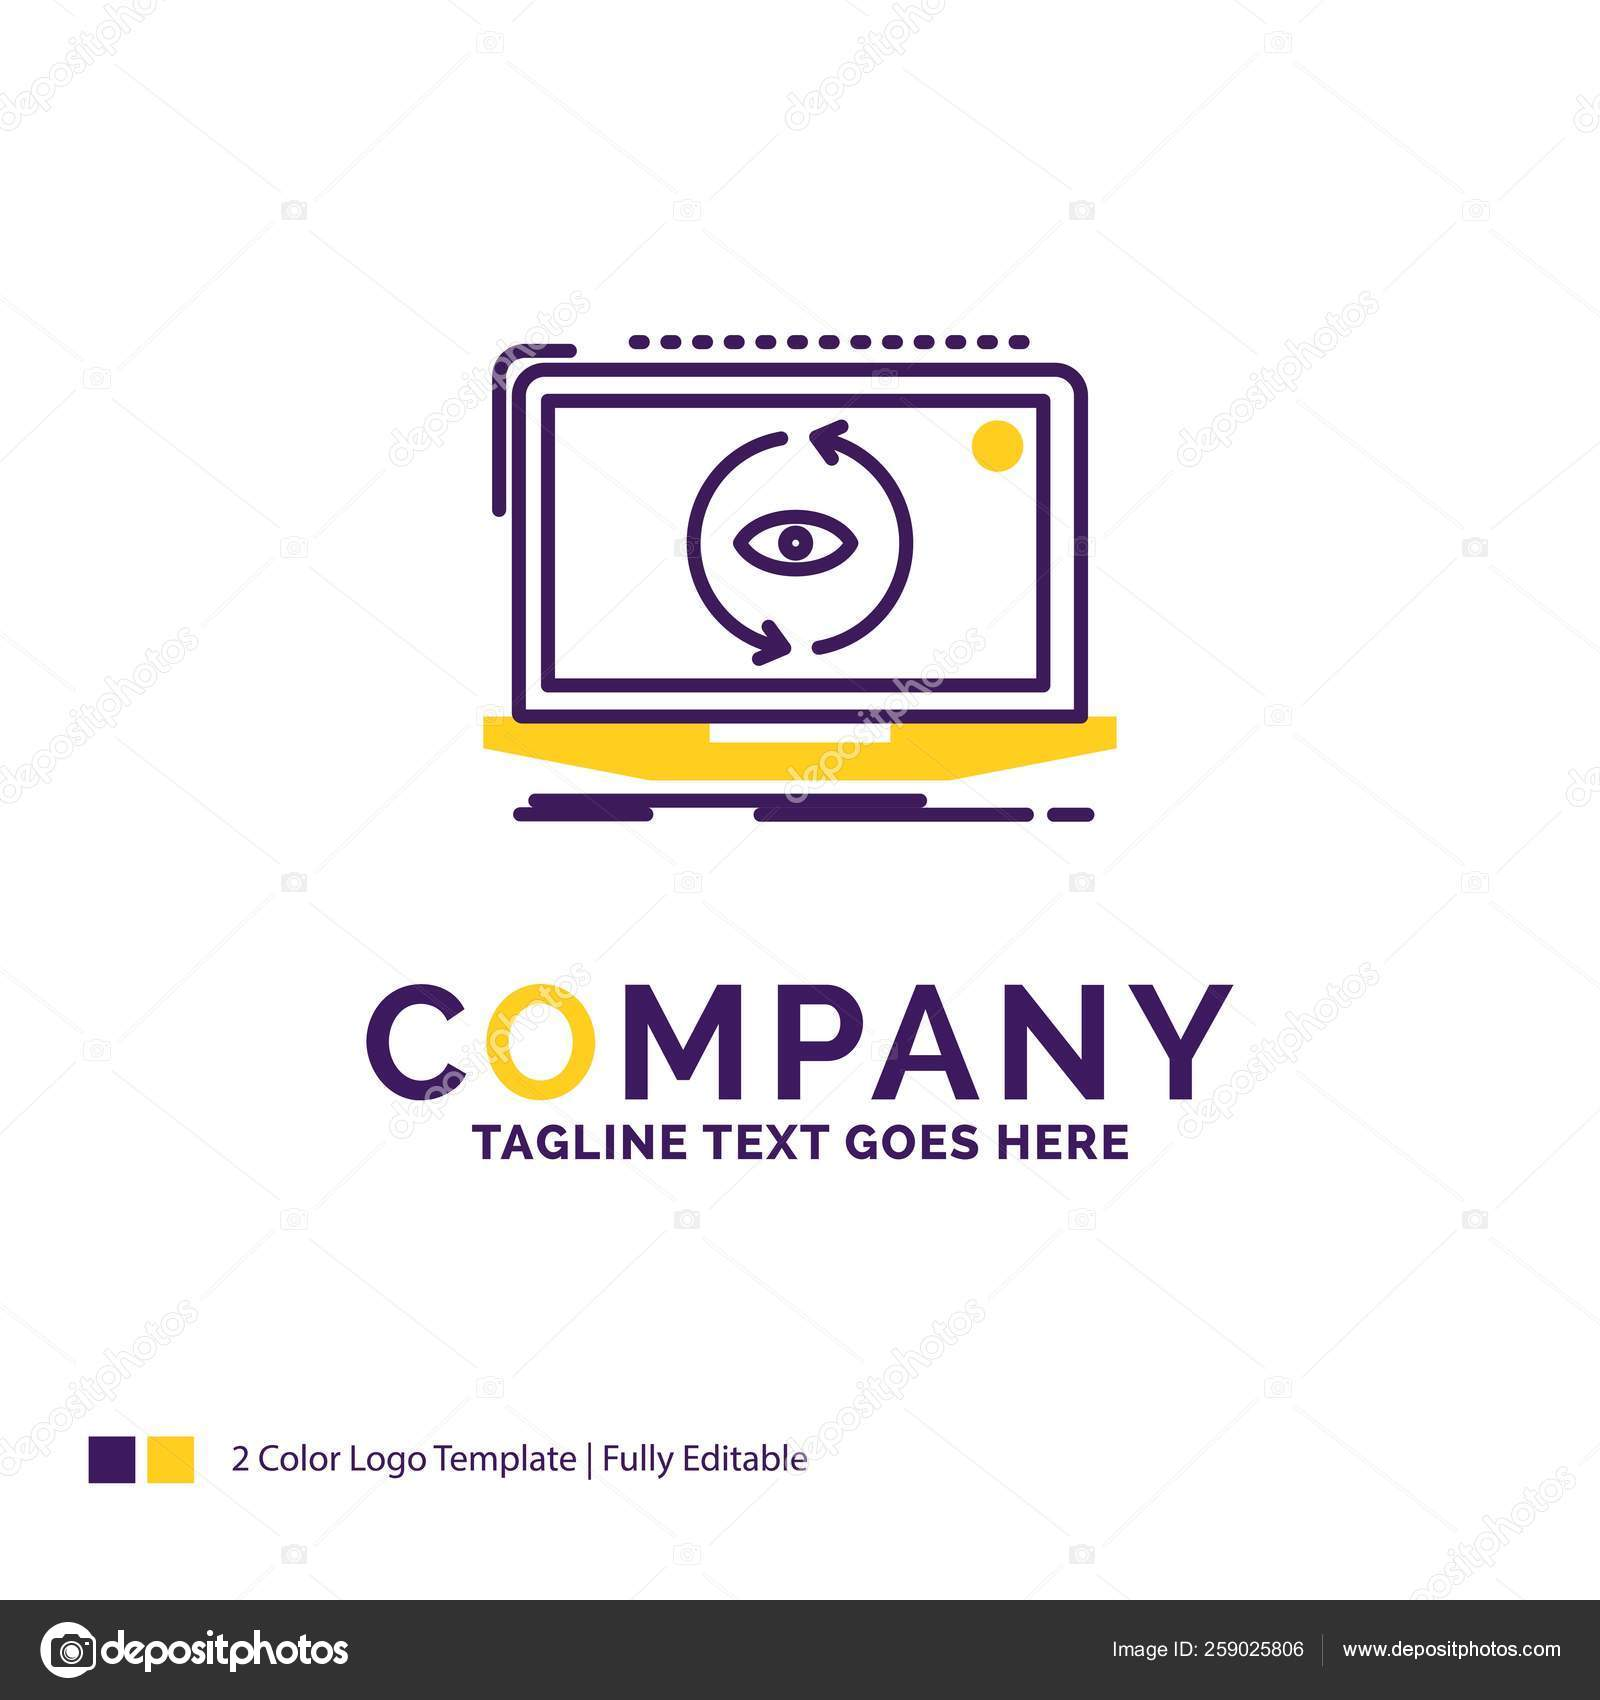 Company Name Logo Design For App Application New Software Up Stock Vector C Flatart 259025806